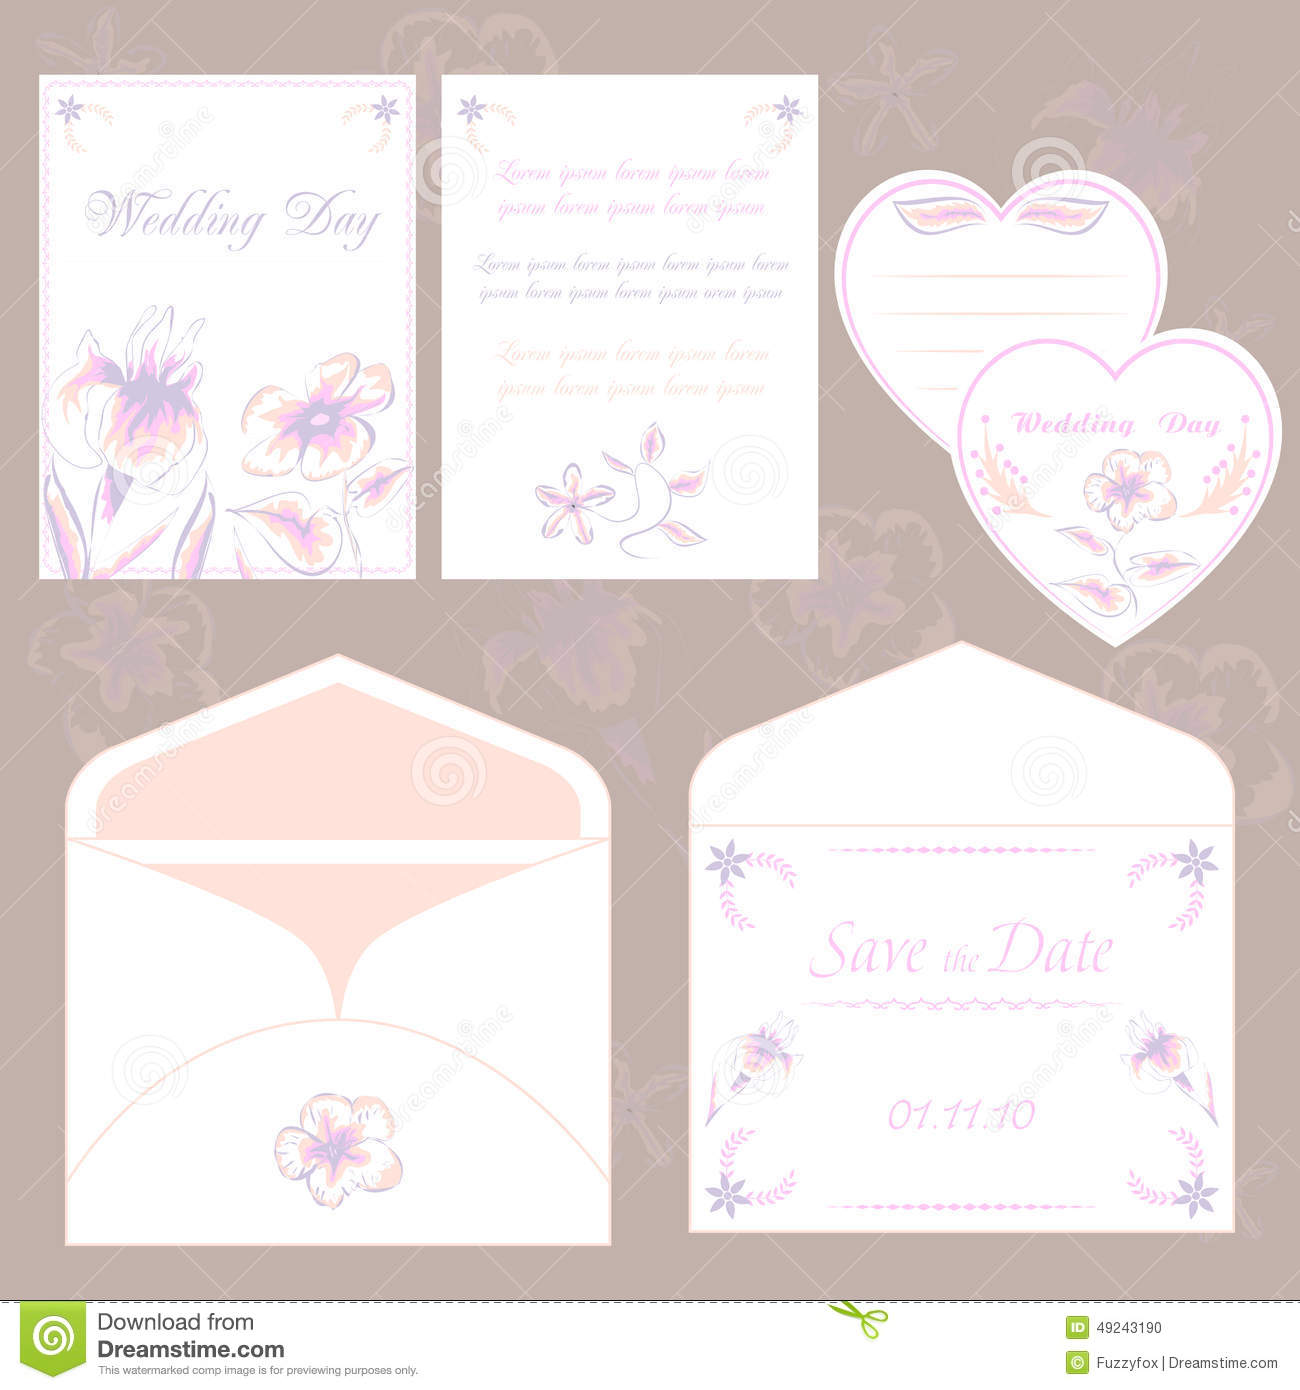 wedding invitation envelopes design wedding invitations envelopes Wedding Invitation Envelopes Awesome